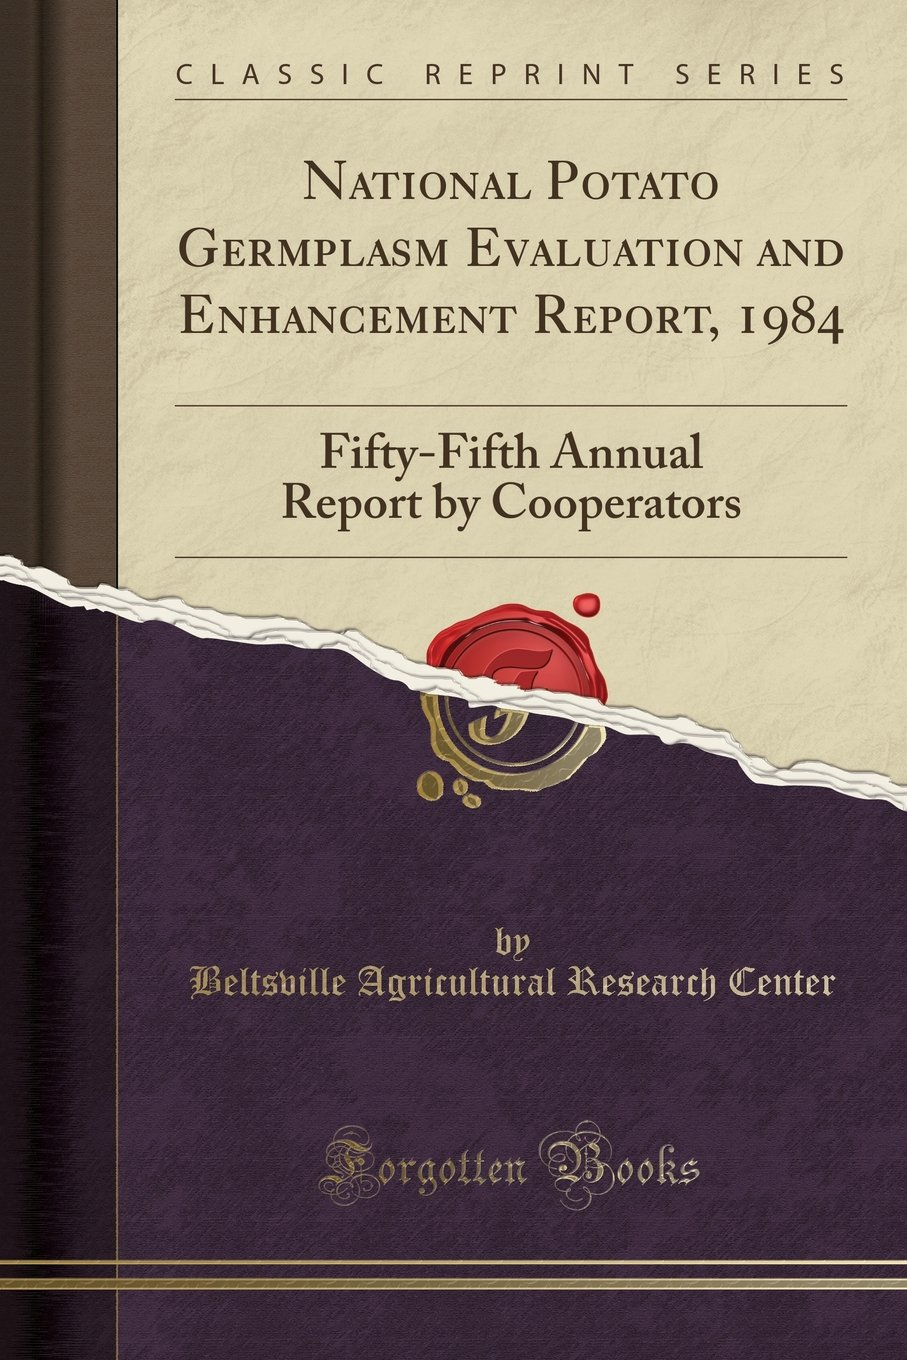 Download National Potato Germplasm Evaluation and Enhancement Report, 1984: Fifty-Fifth Annual Report by Cooperators (Classic Reprint) PDF